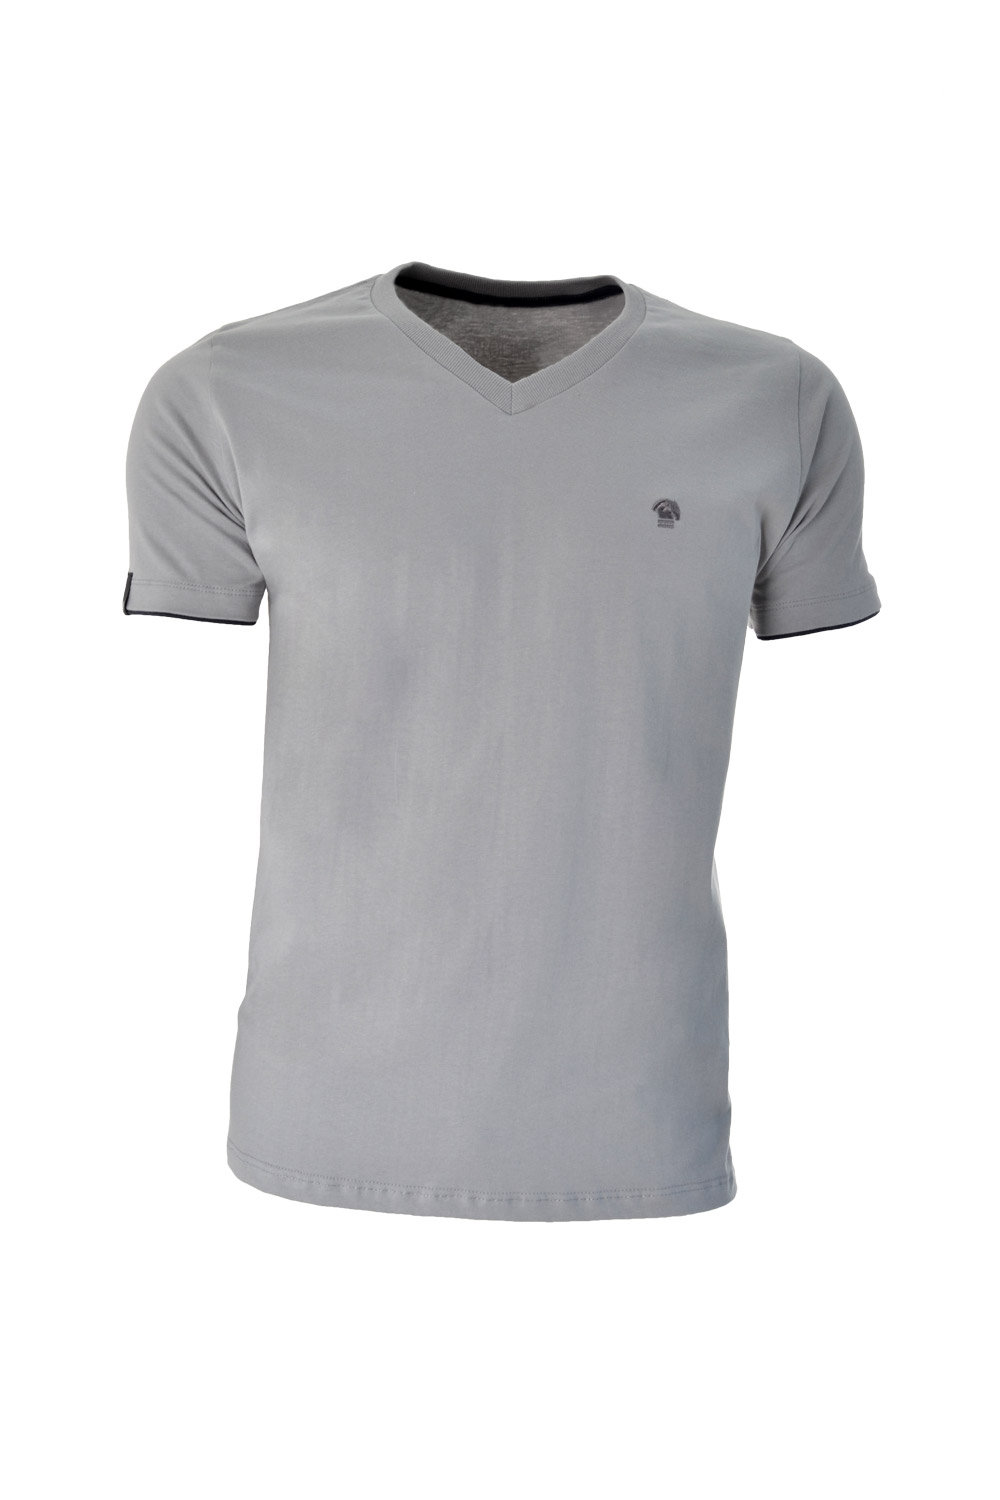 CAMISETA MC BLUES SUPER SLIM ALGODAO GOLA V LISO CINZA CLARO